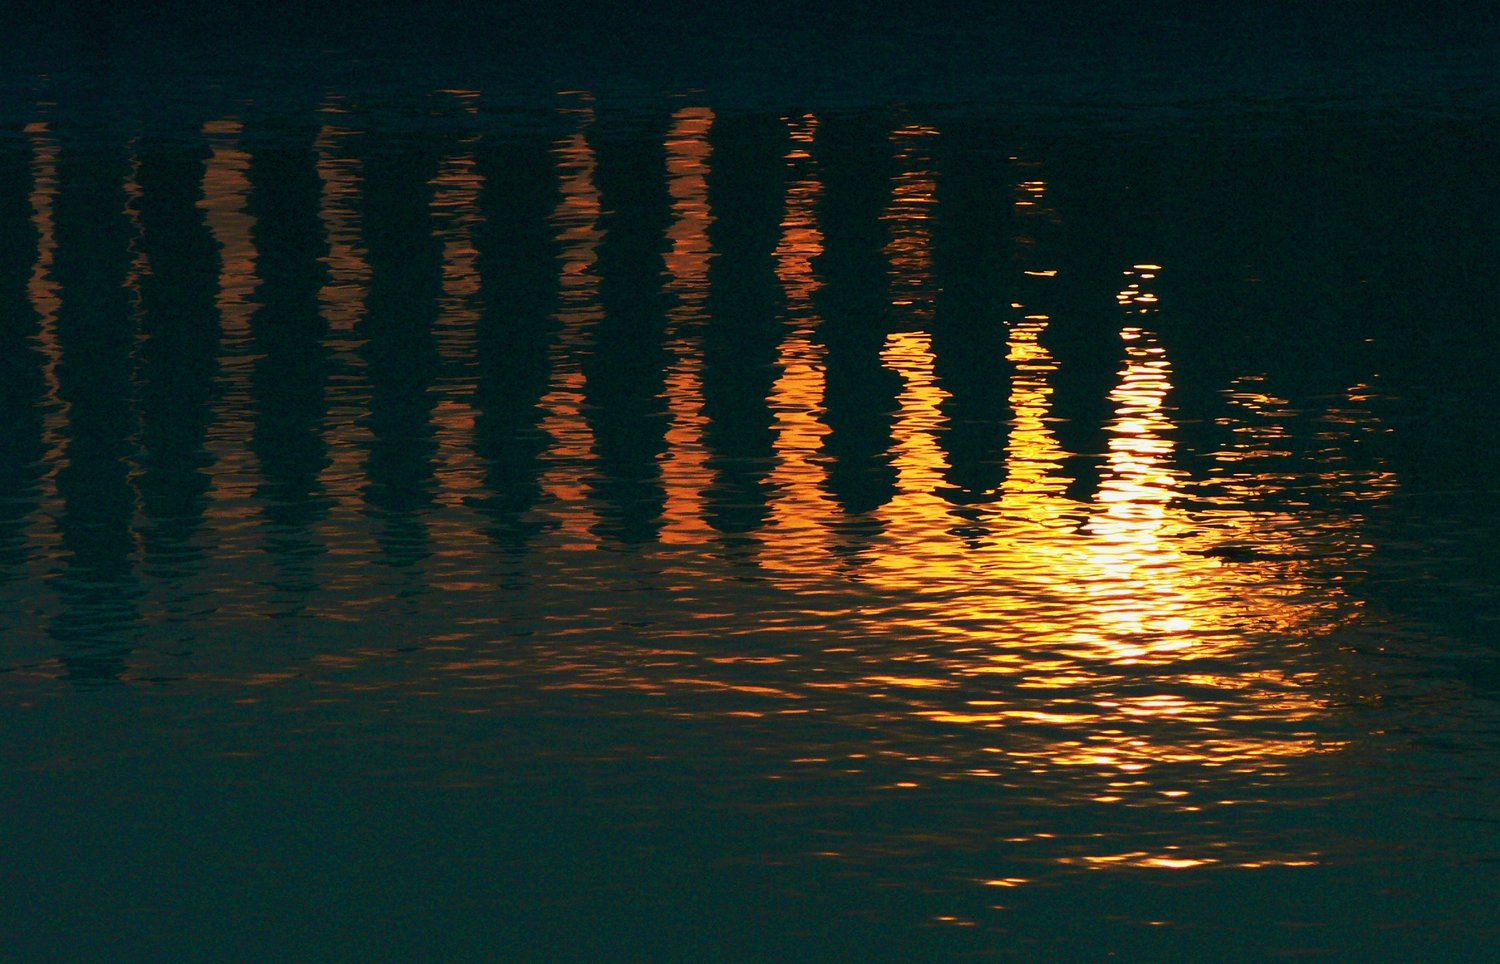 - Sunset in the pool - Techno-Impressionist Museum - Techno-Impressionism - art - beautiful - photo photography picture - by Tony Karp